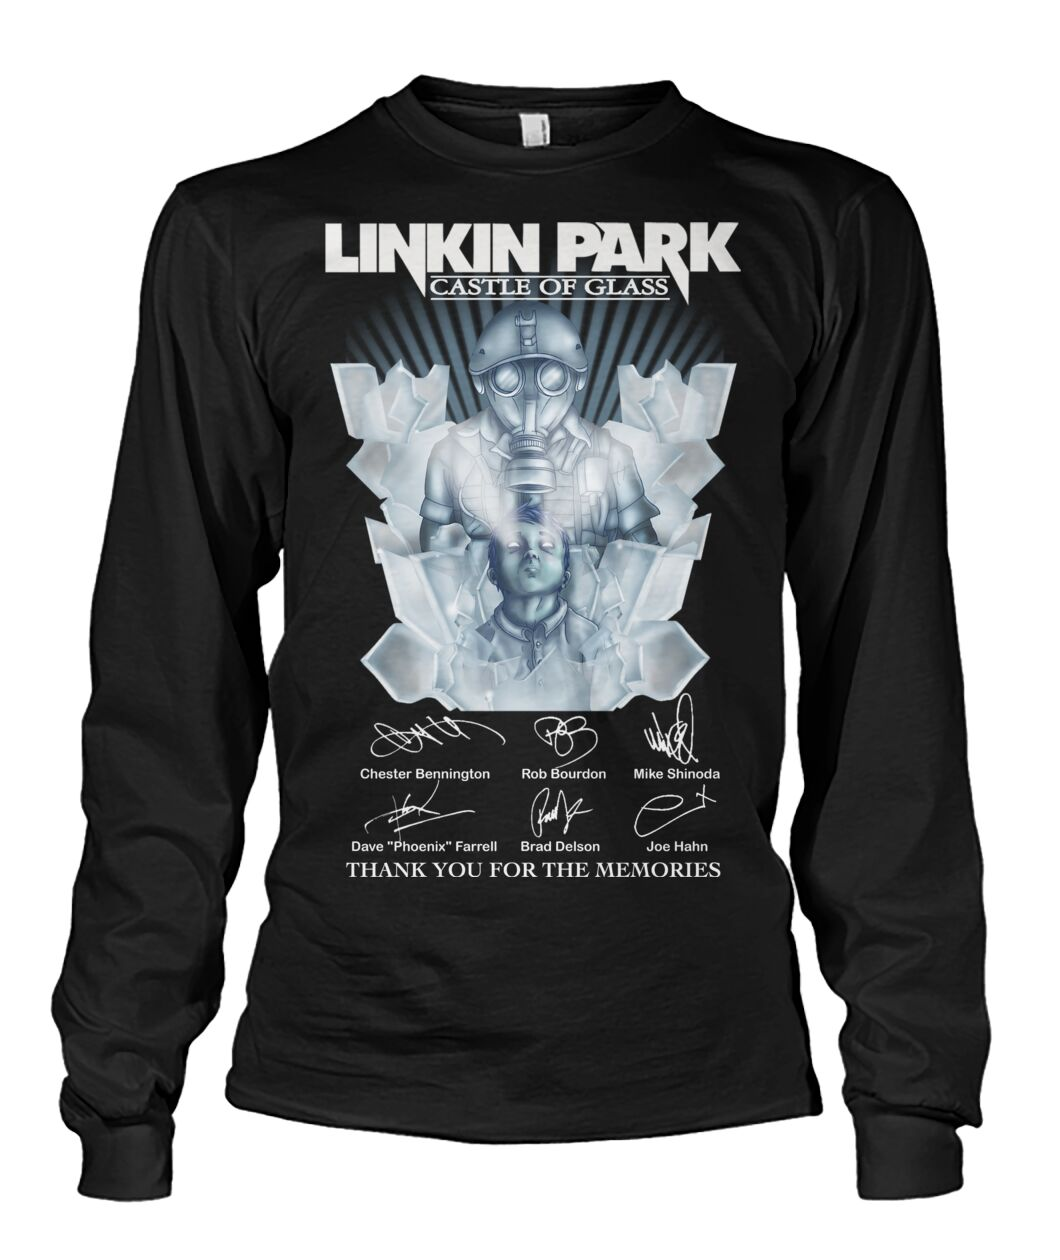 Linkin park castle of glass thank you for the memories